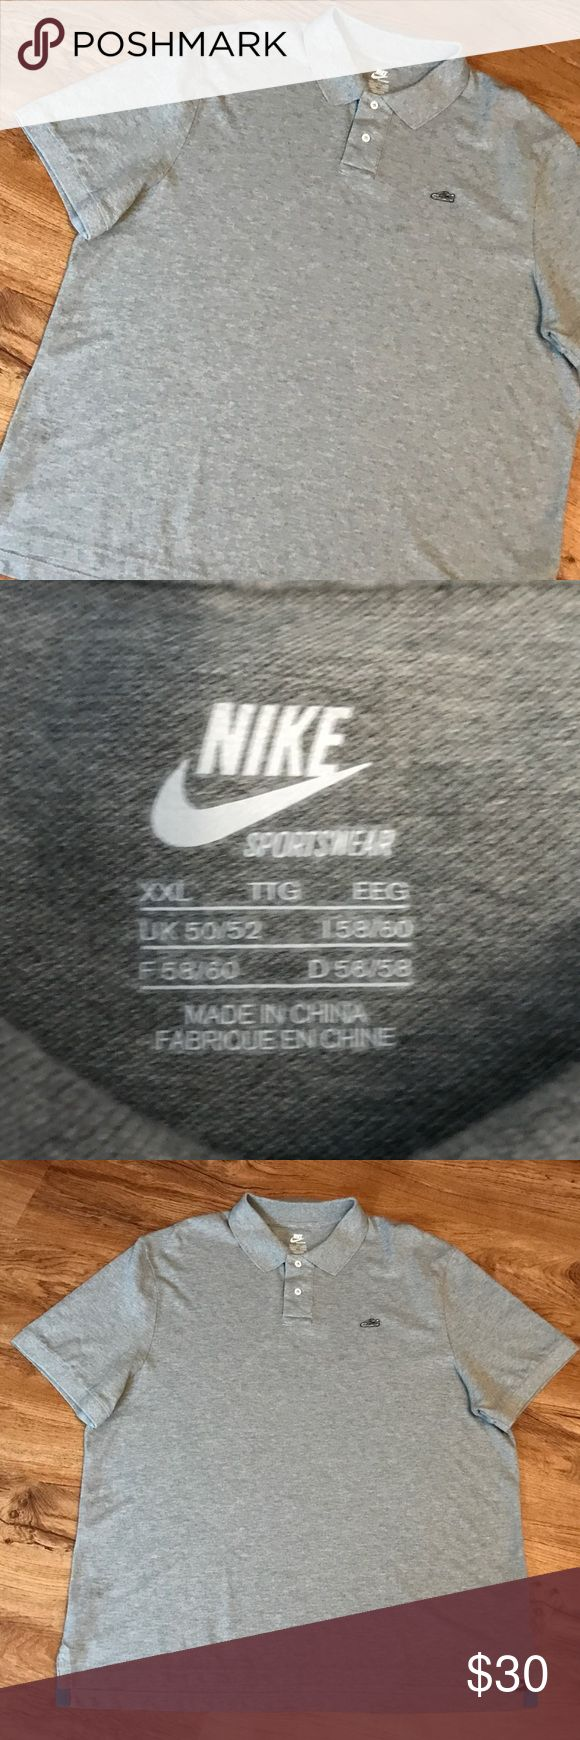 RARE NIKE AIR MAX POLO SHIRT embroidered shoe NIKE SPORTSWEAR Air Max polo shirt, slim fit gray shirt with white trim, white with blue Air Max shoe embroidered emblem on breast. Tagged Men's XXLarge, dimensions below. Nice condition, no holes, rips, or stains. Nike Shirts Polos